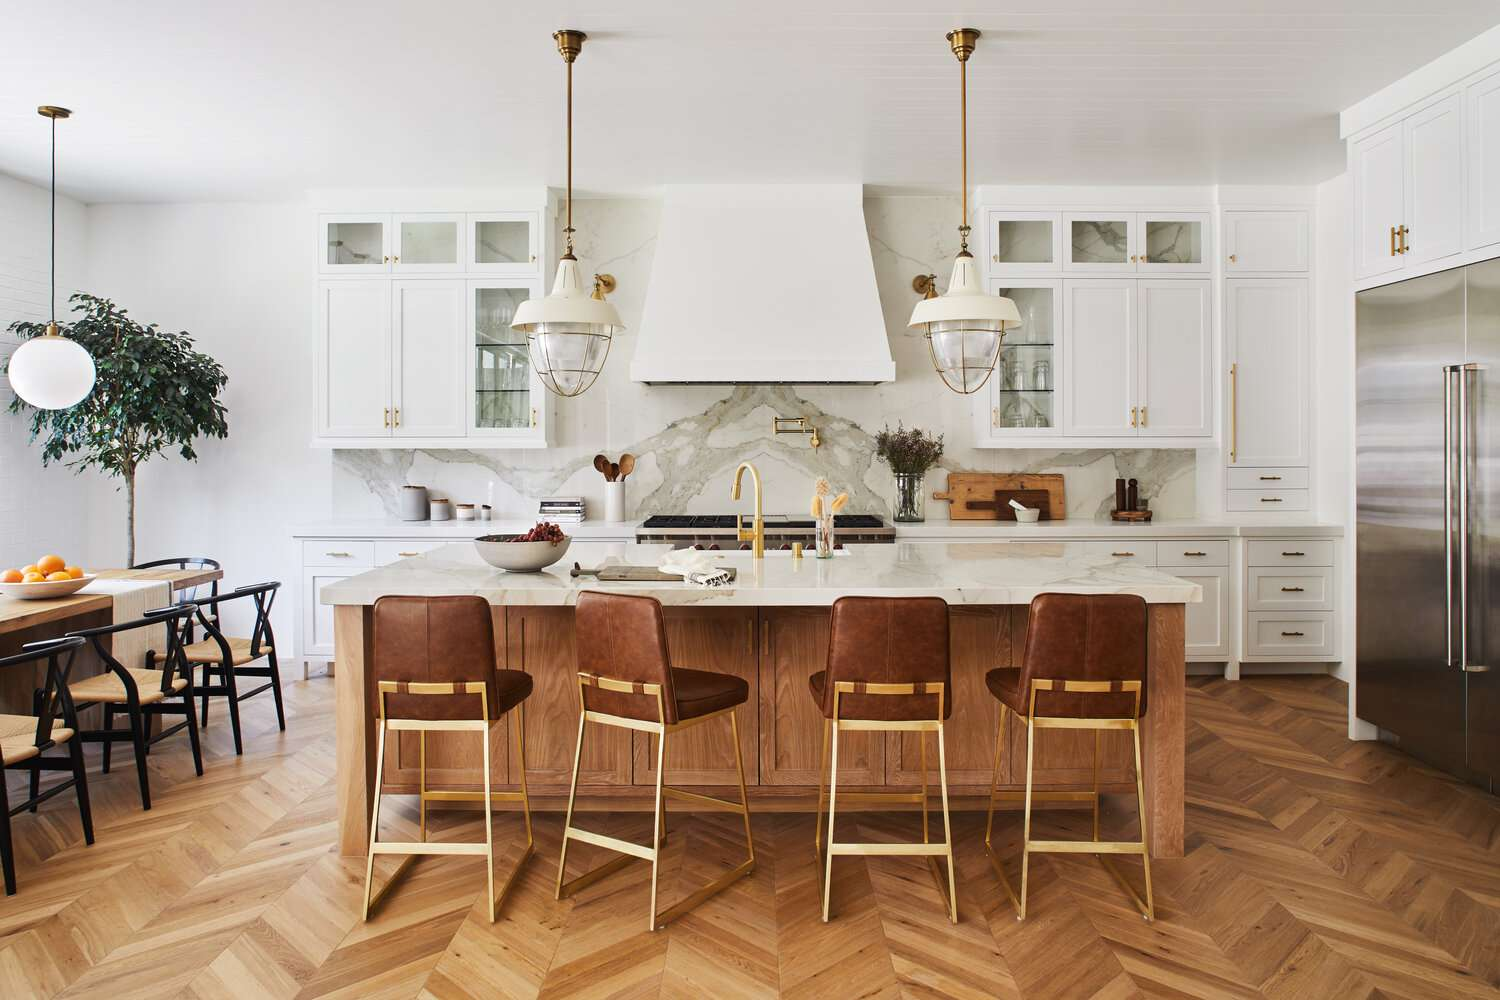 An open-concept kitchen adjacent to a dining room